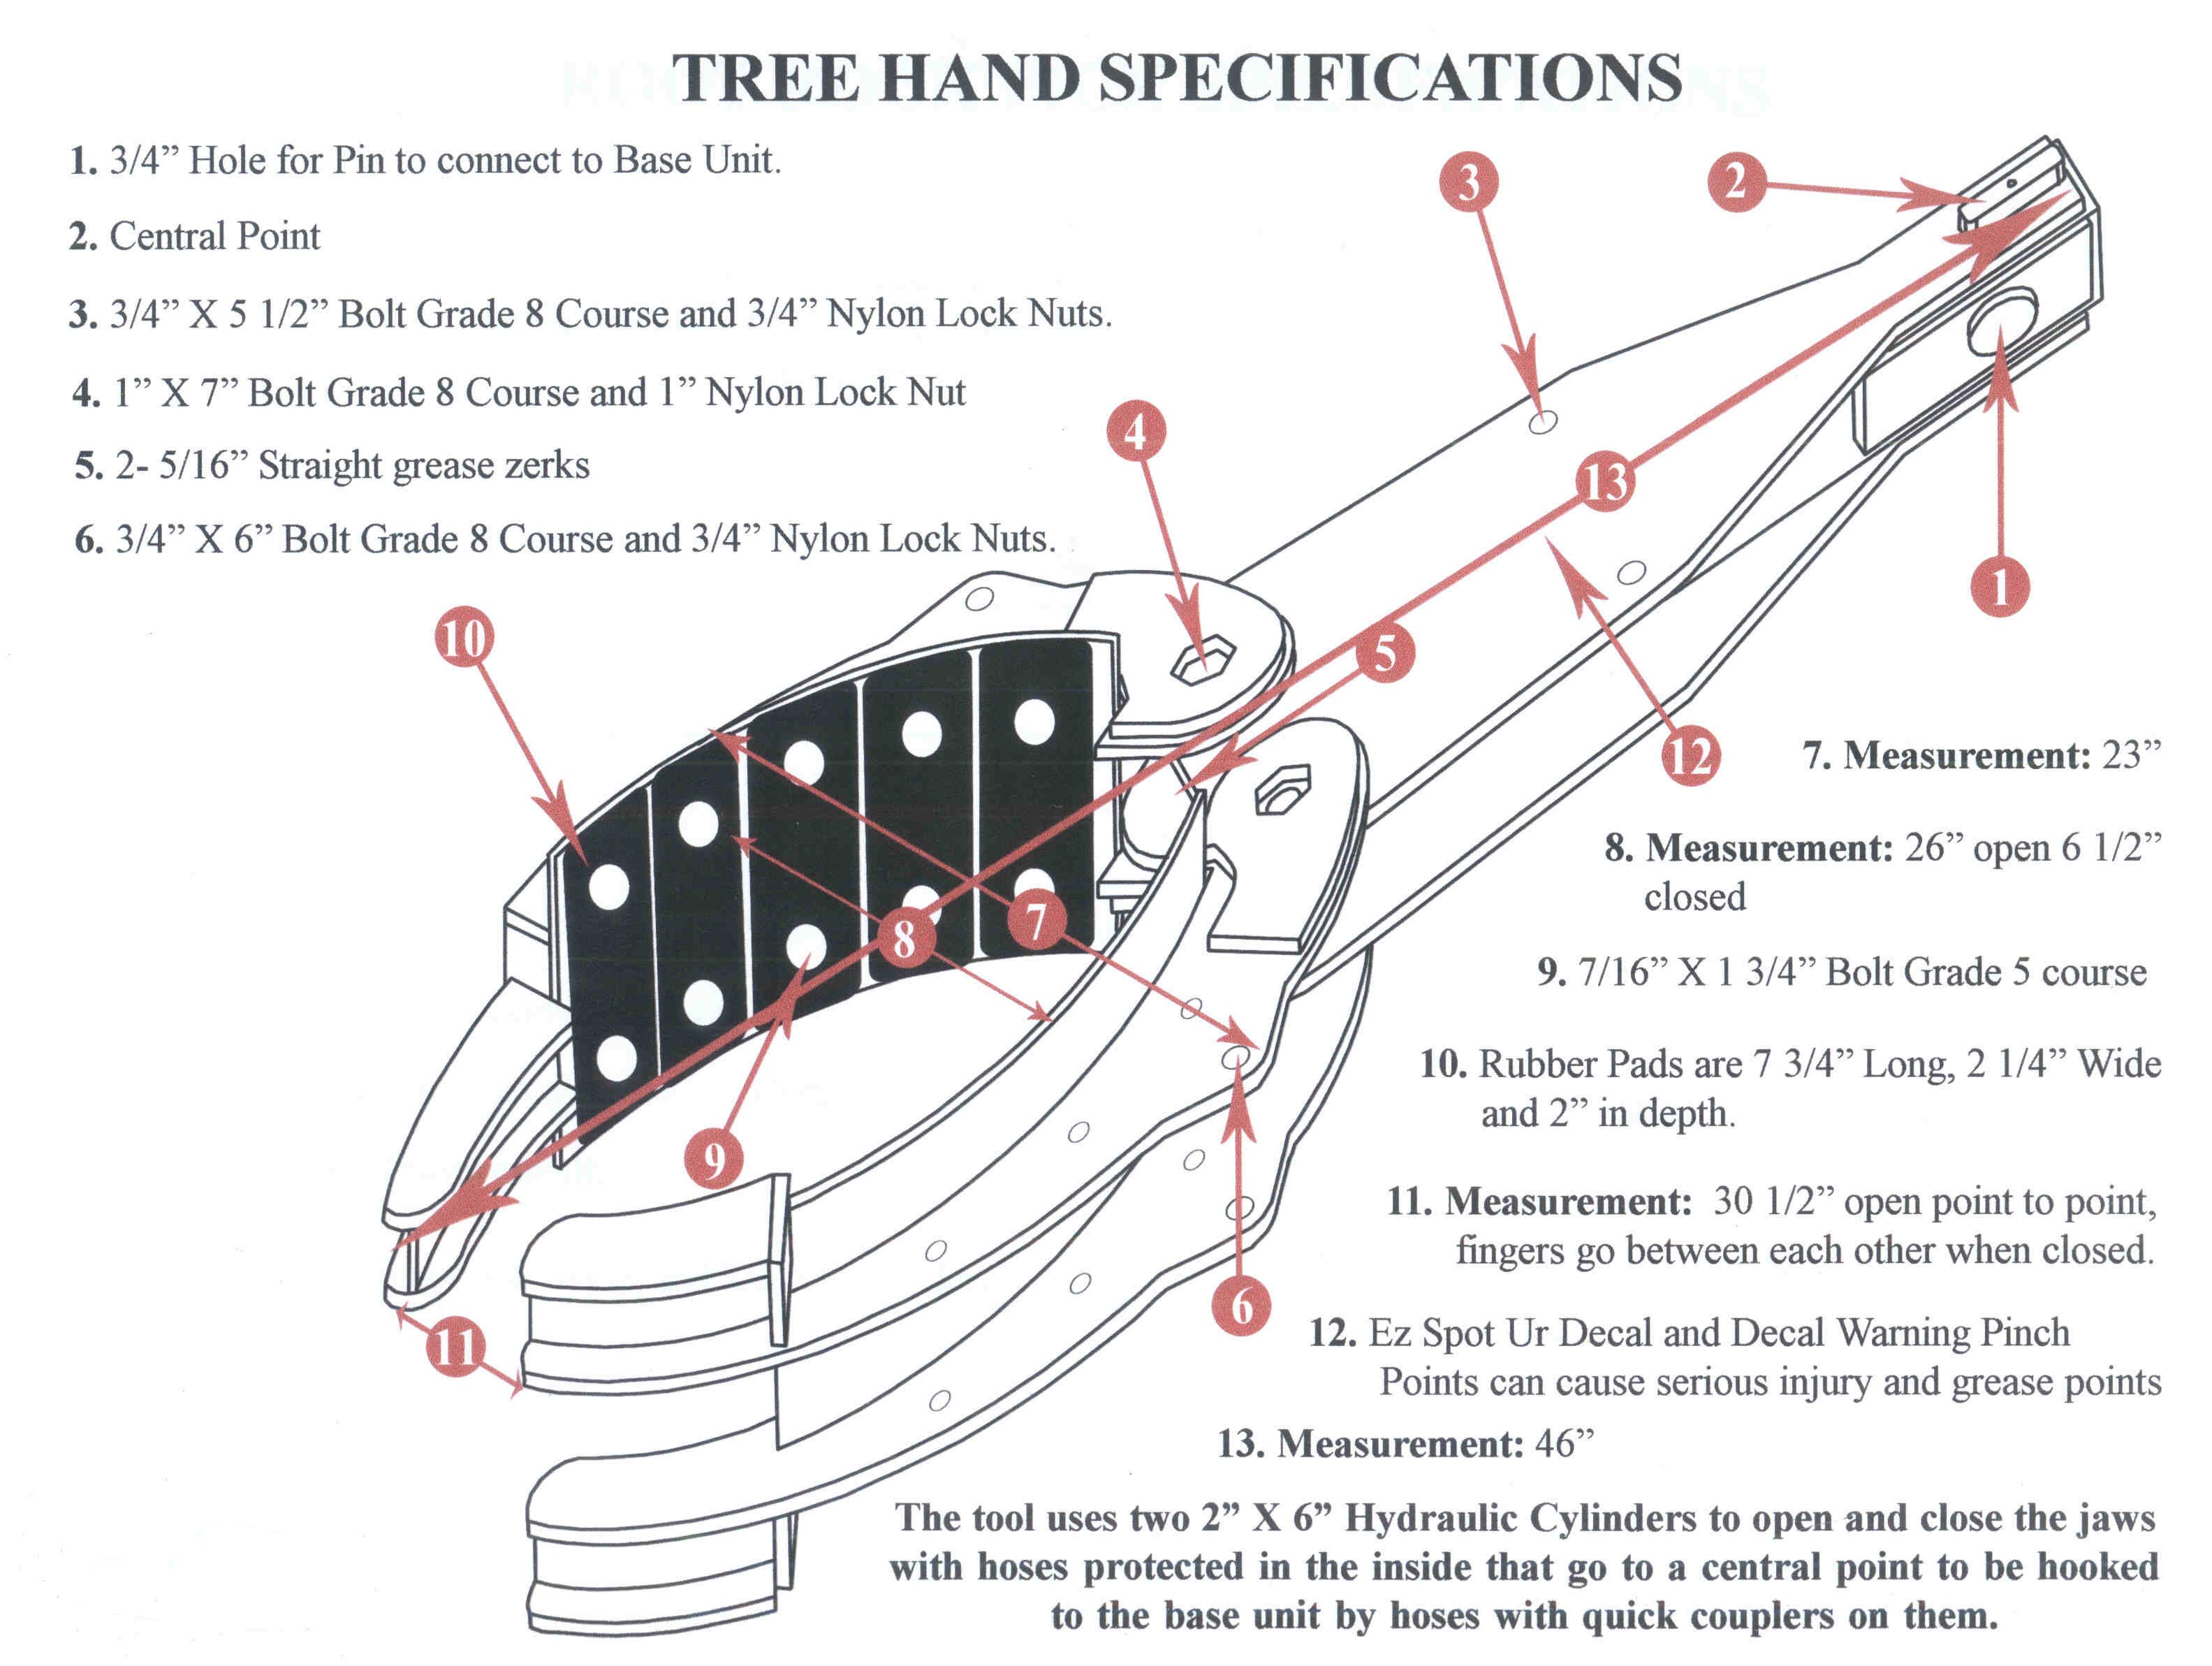 Specifications On The Tree Hand